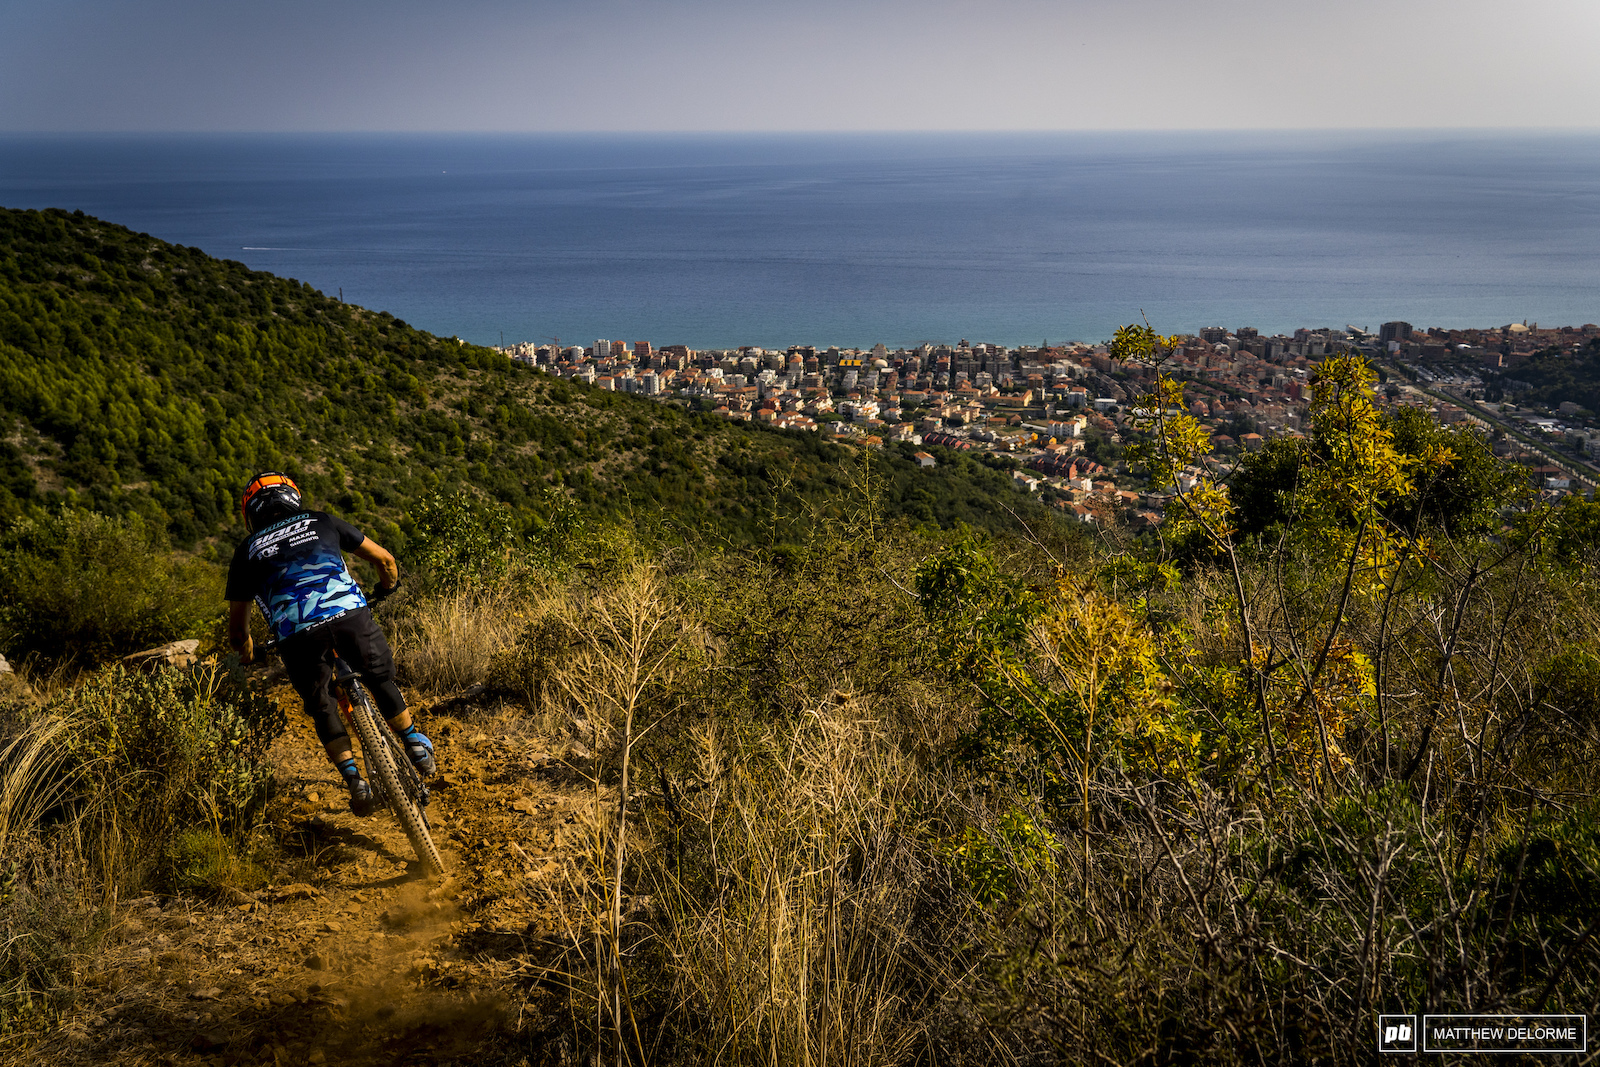 After four stages and a hell of a lot of pedaling the view of the sea as you dive into stage five is a welcome sight.